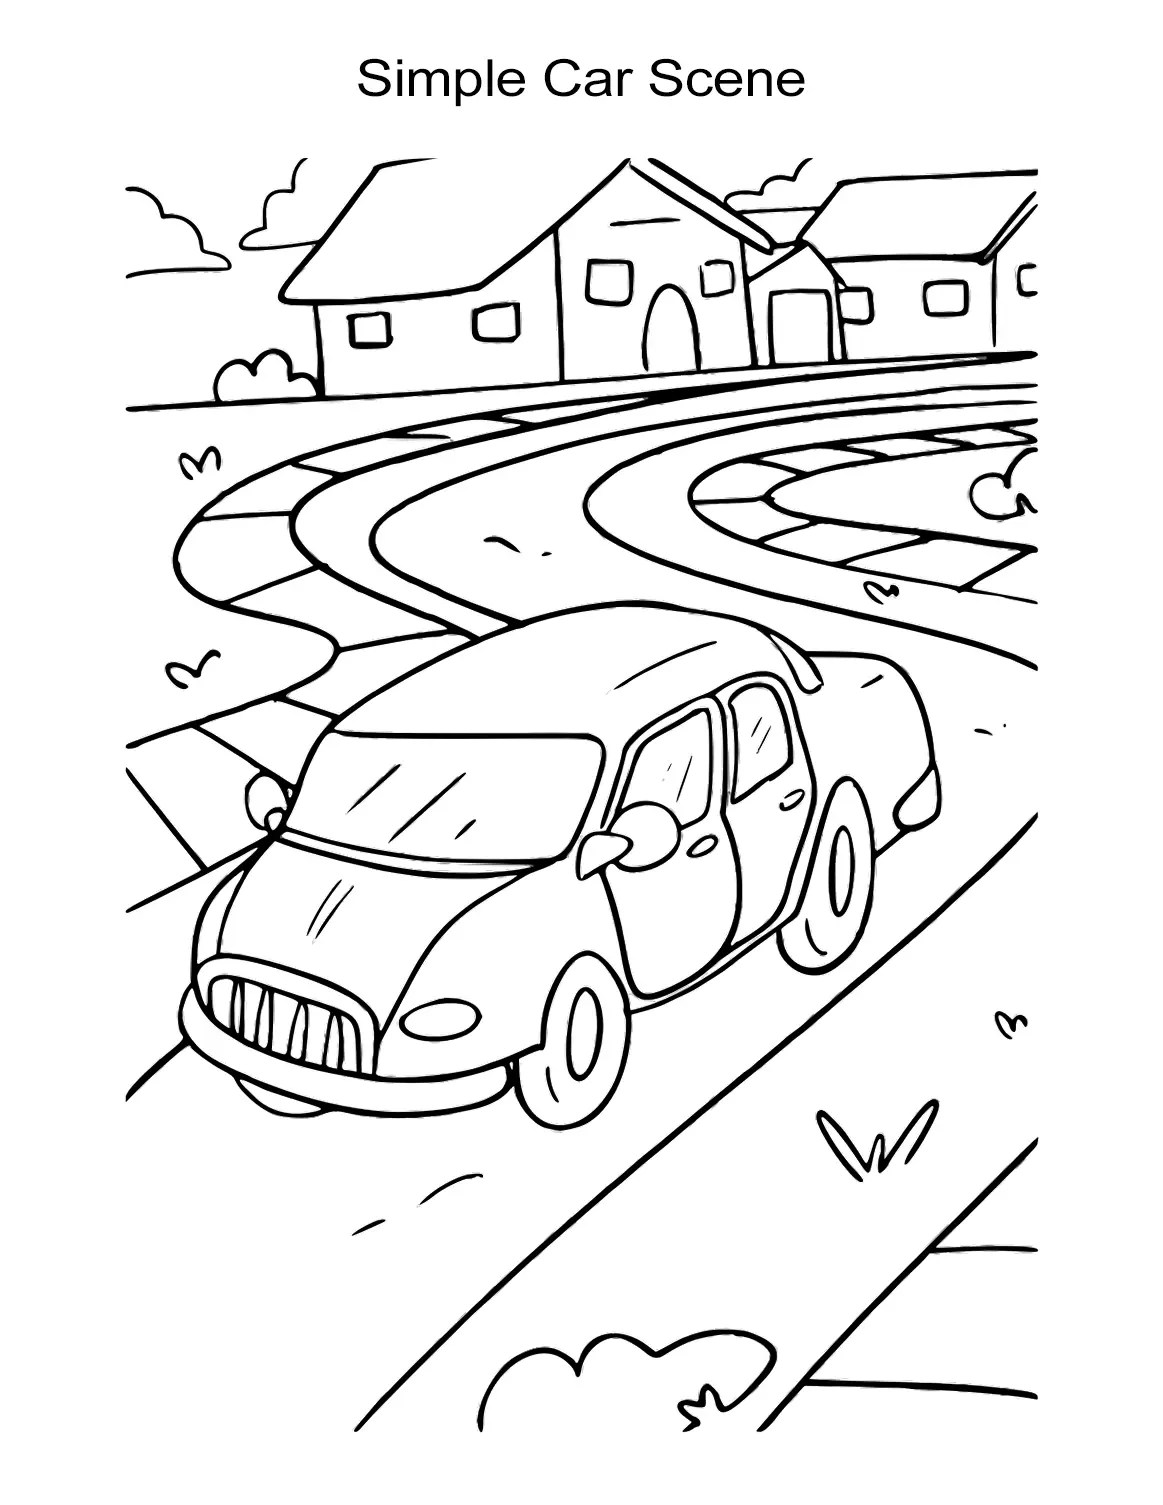 10 Car Coloring Sheets Sports Muscle Racing Cars And